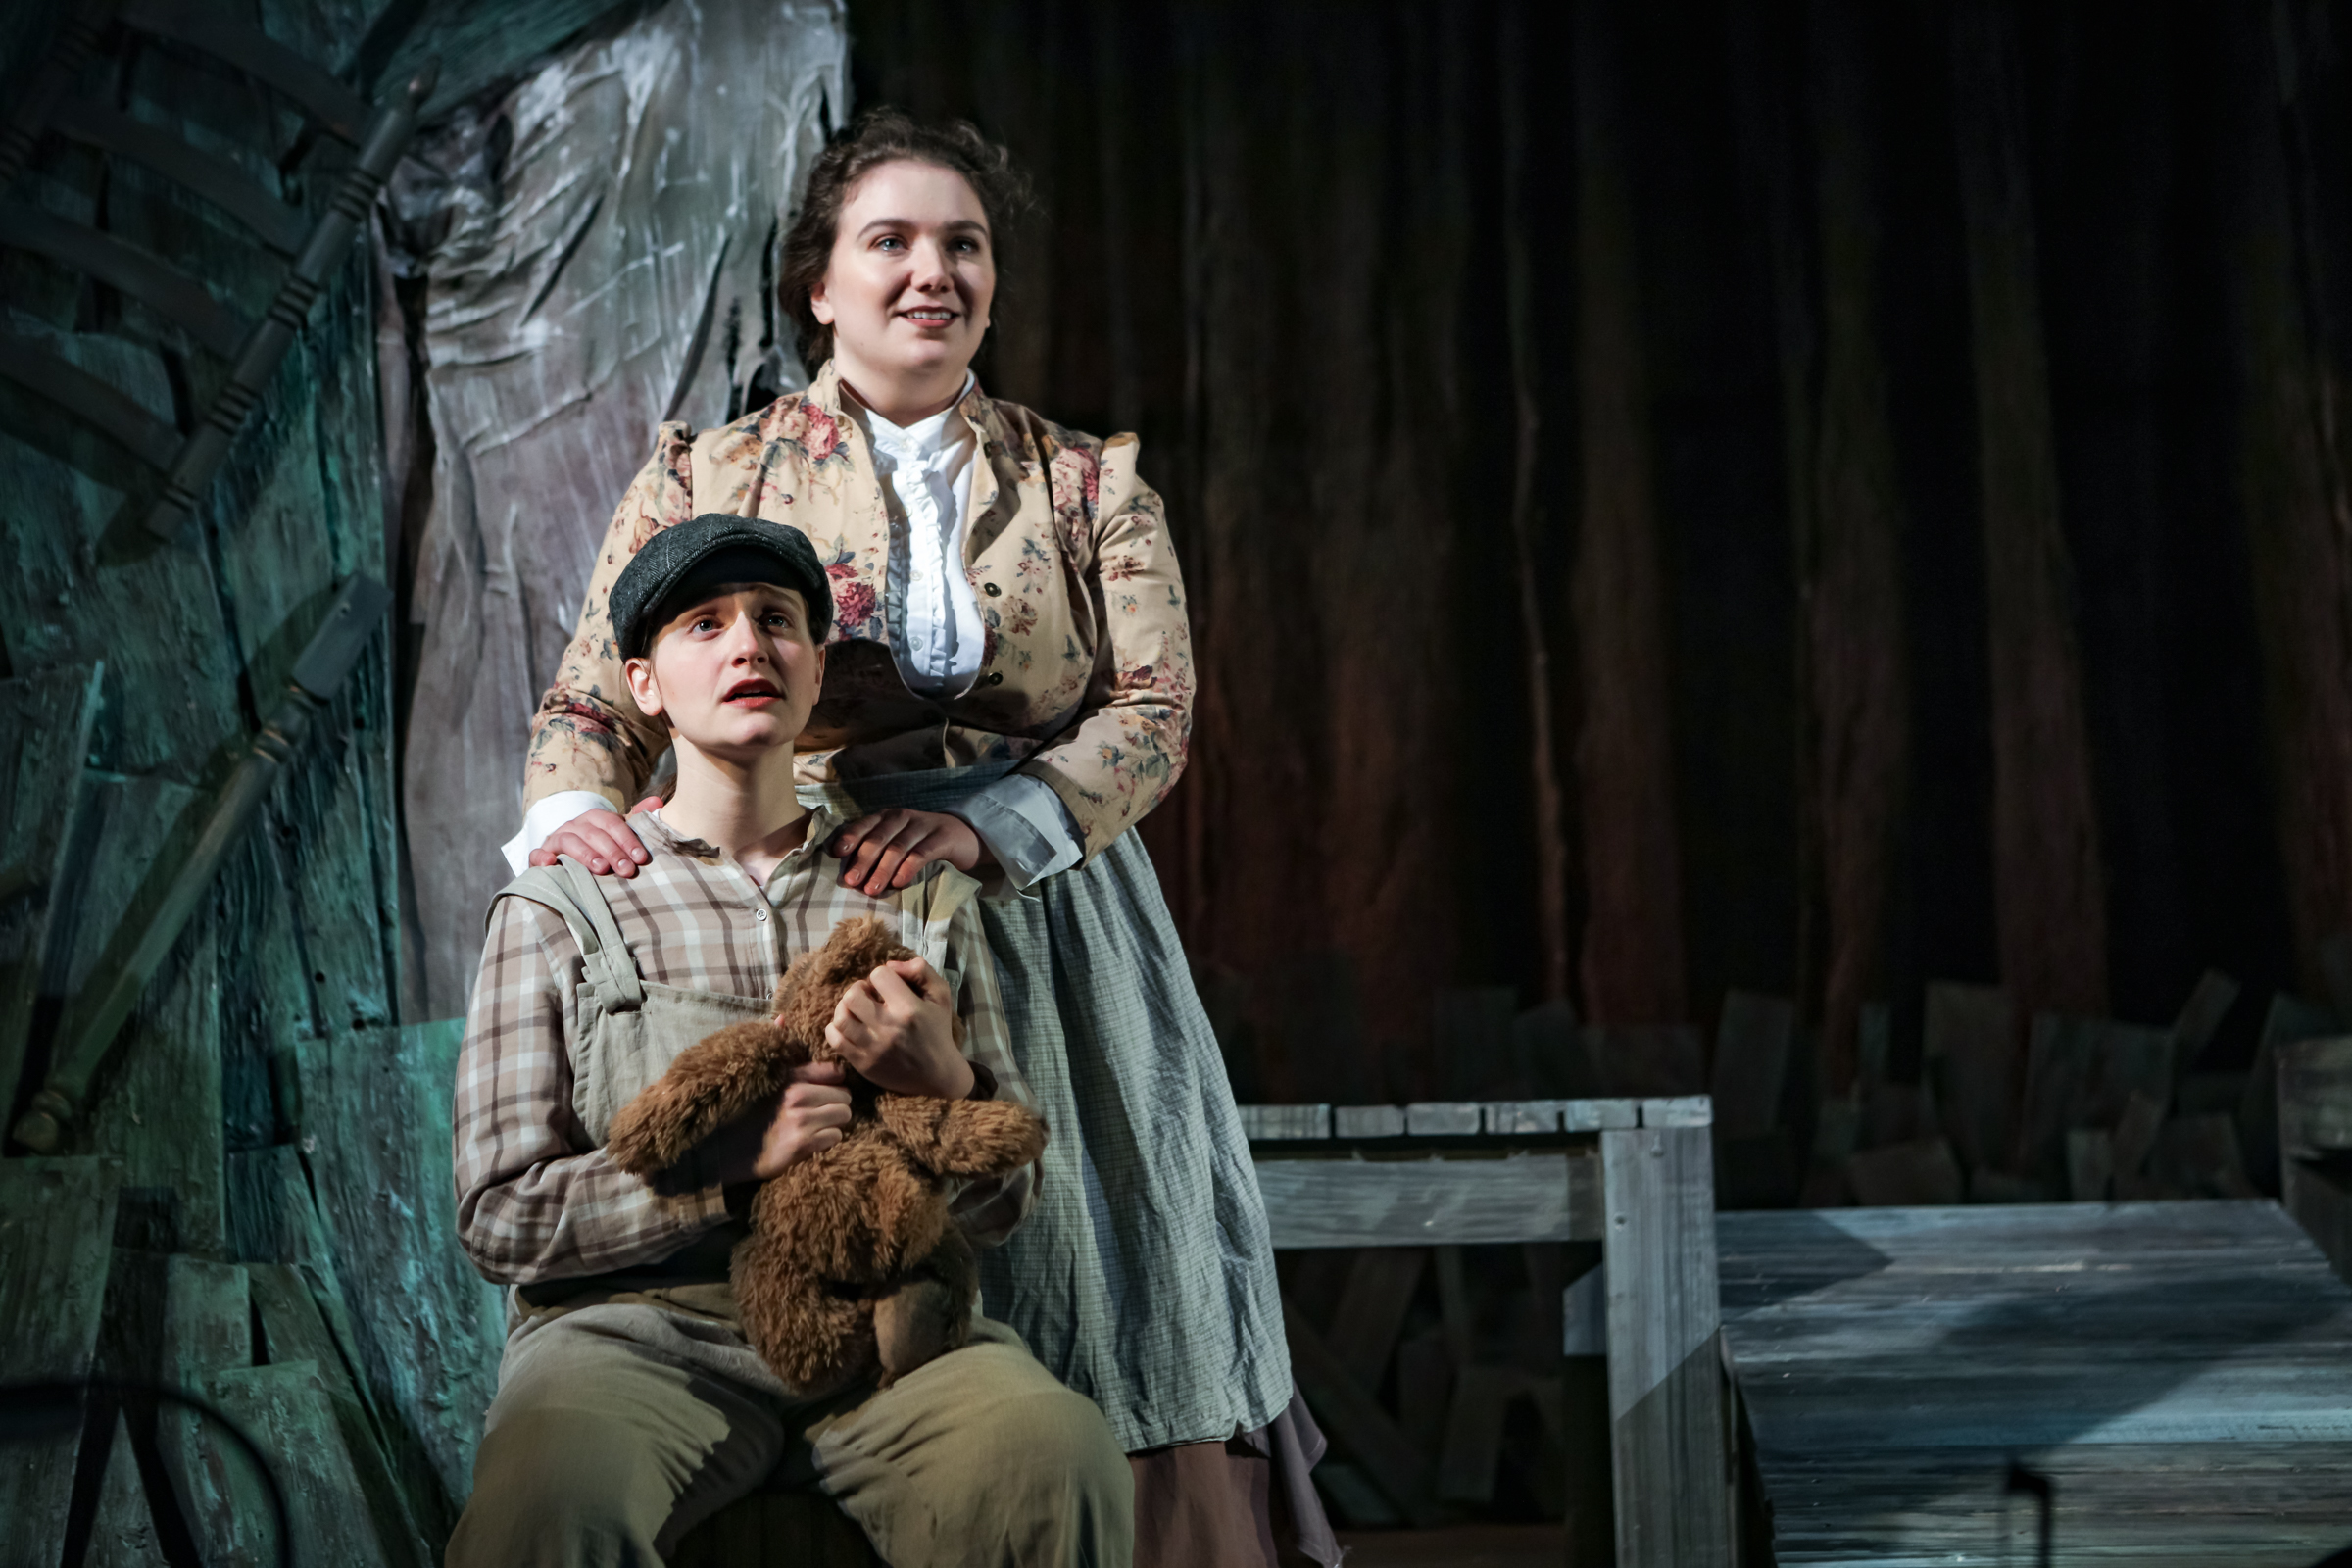 Ann Fogler as Brother and Emily Harmon as Auntie in  The Scarlet Ibis .  Boston Opera Collaborative; January 2019.  Photo Credit: Dan Busler